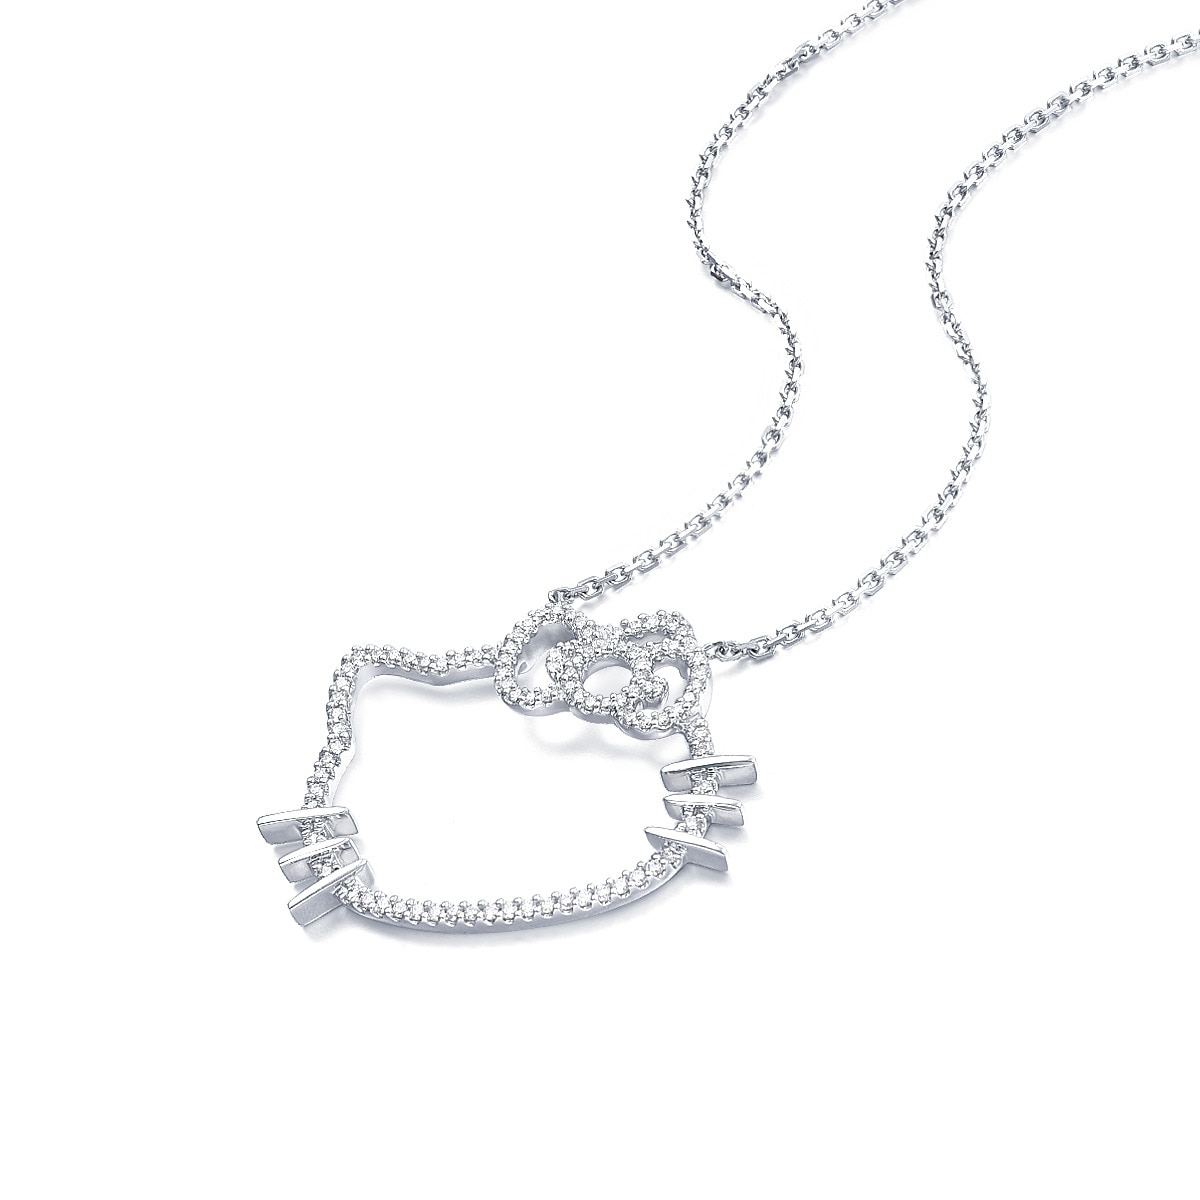 Sanrio hello kitty 18k gold diamond necklace chow sang sang loading zoom mozeypictures Gallery